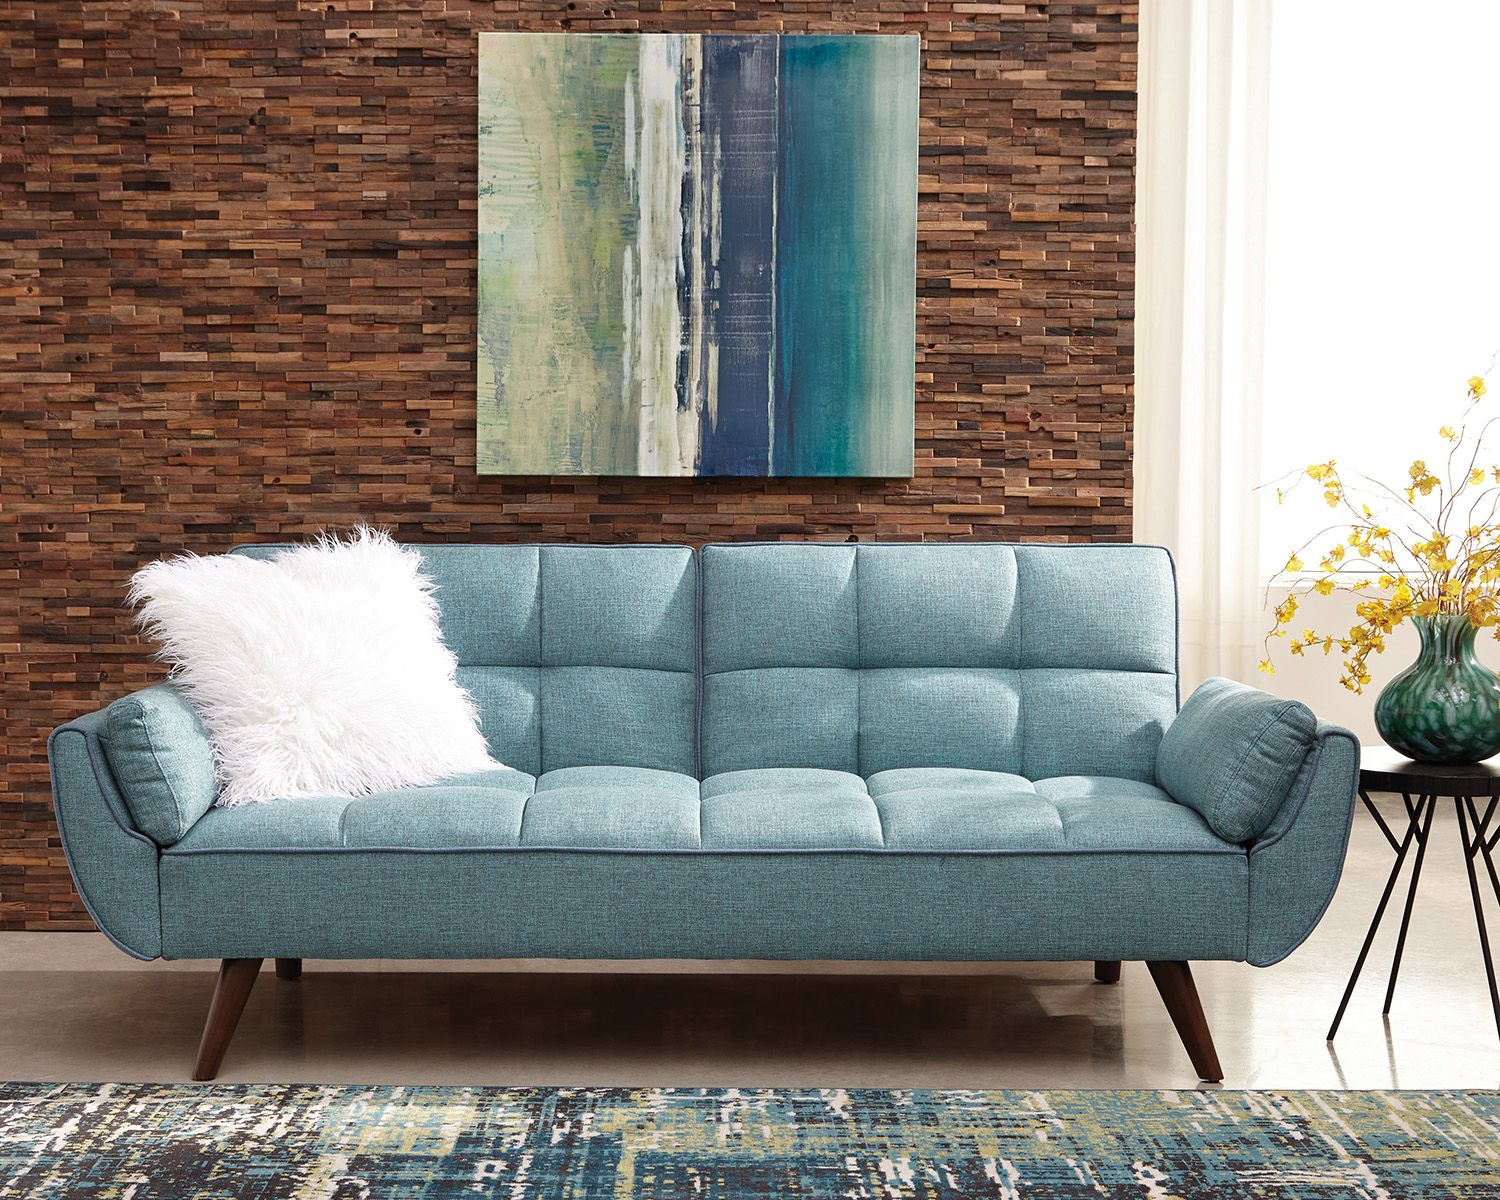 Cheyenne turquoise blue woven fabric sofa bed